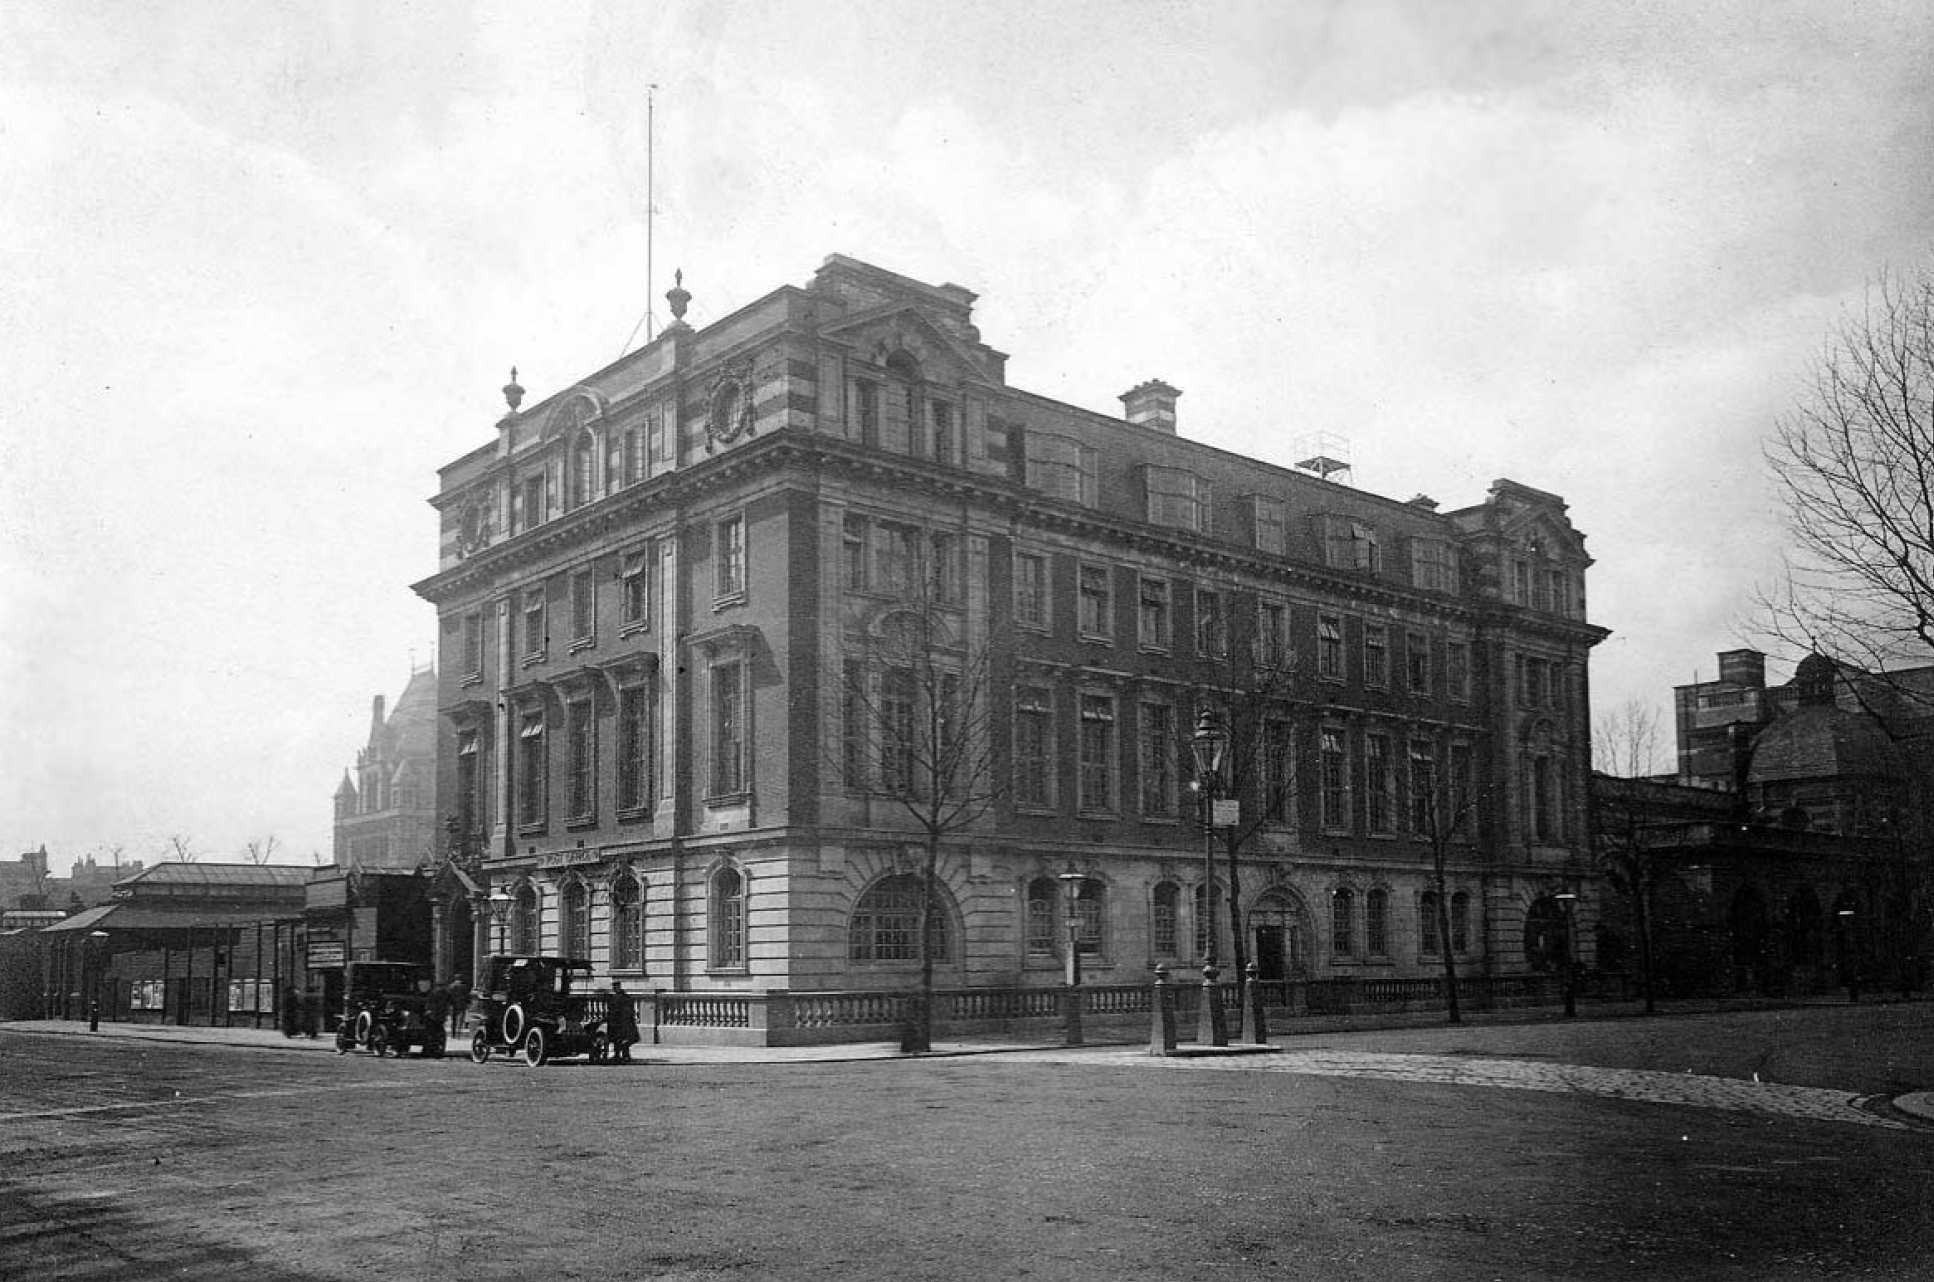 The Meteorological Office headquarters, Exhibition Road, South Kensington. This was the headquarters from November 1910 until November 1919.